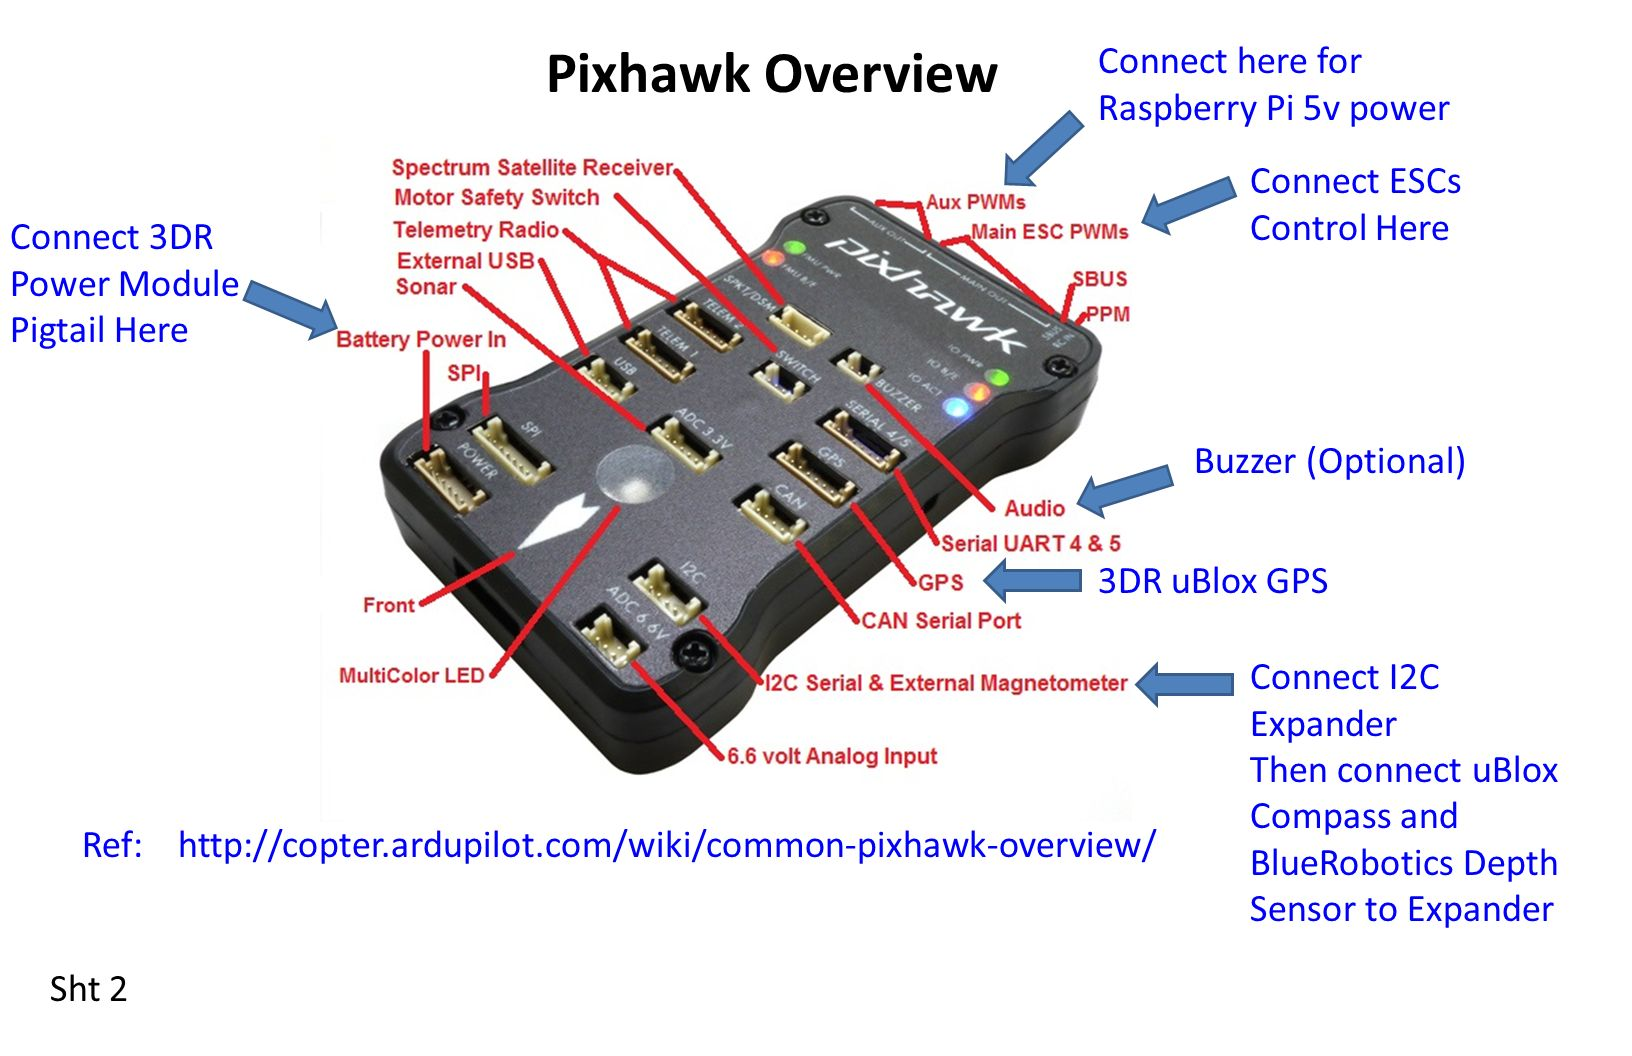 Bluerov Electrical Block Diagram Pressure Enclosure Ppt Video Raspberry Pi Model B Pixhawk Overview Connect Here For 5v Power